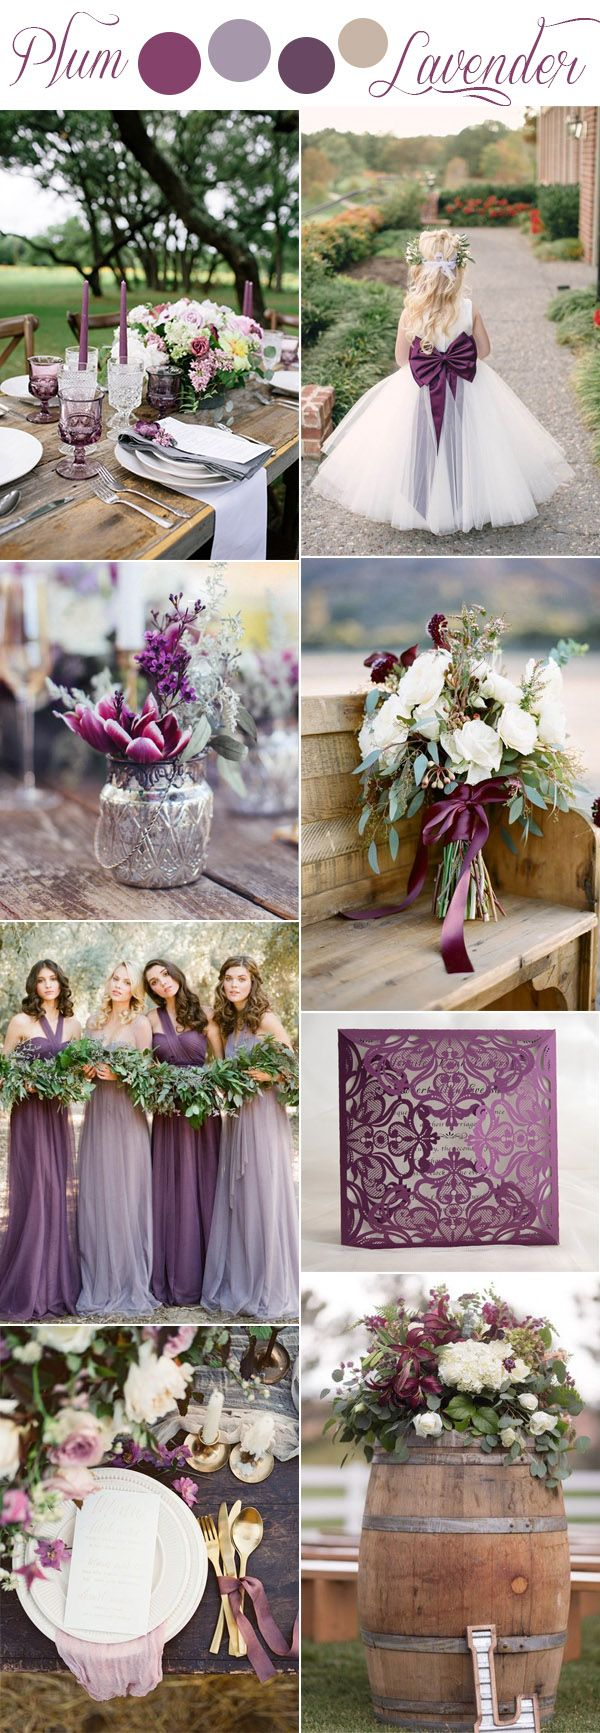 5 Gorgeous Rustic Romantic and Elegant Wedding Ideas & Color Palettes